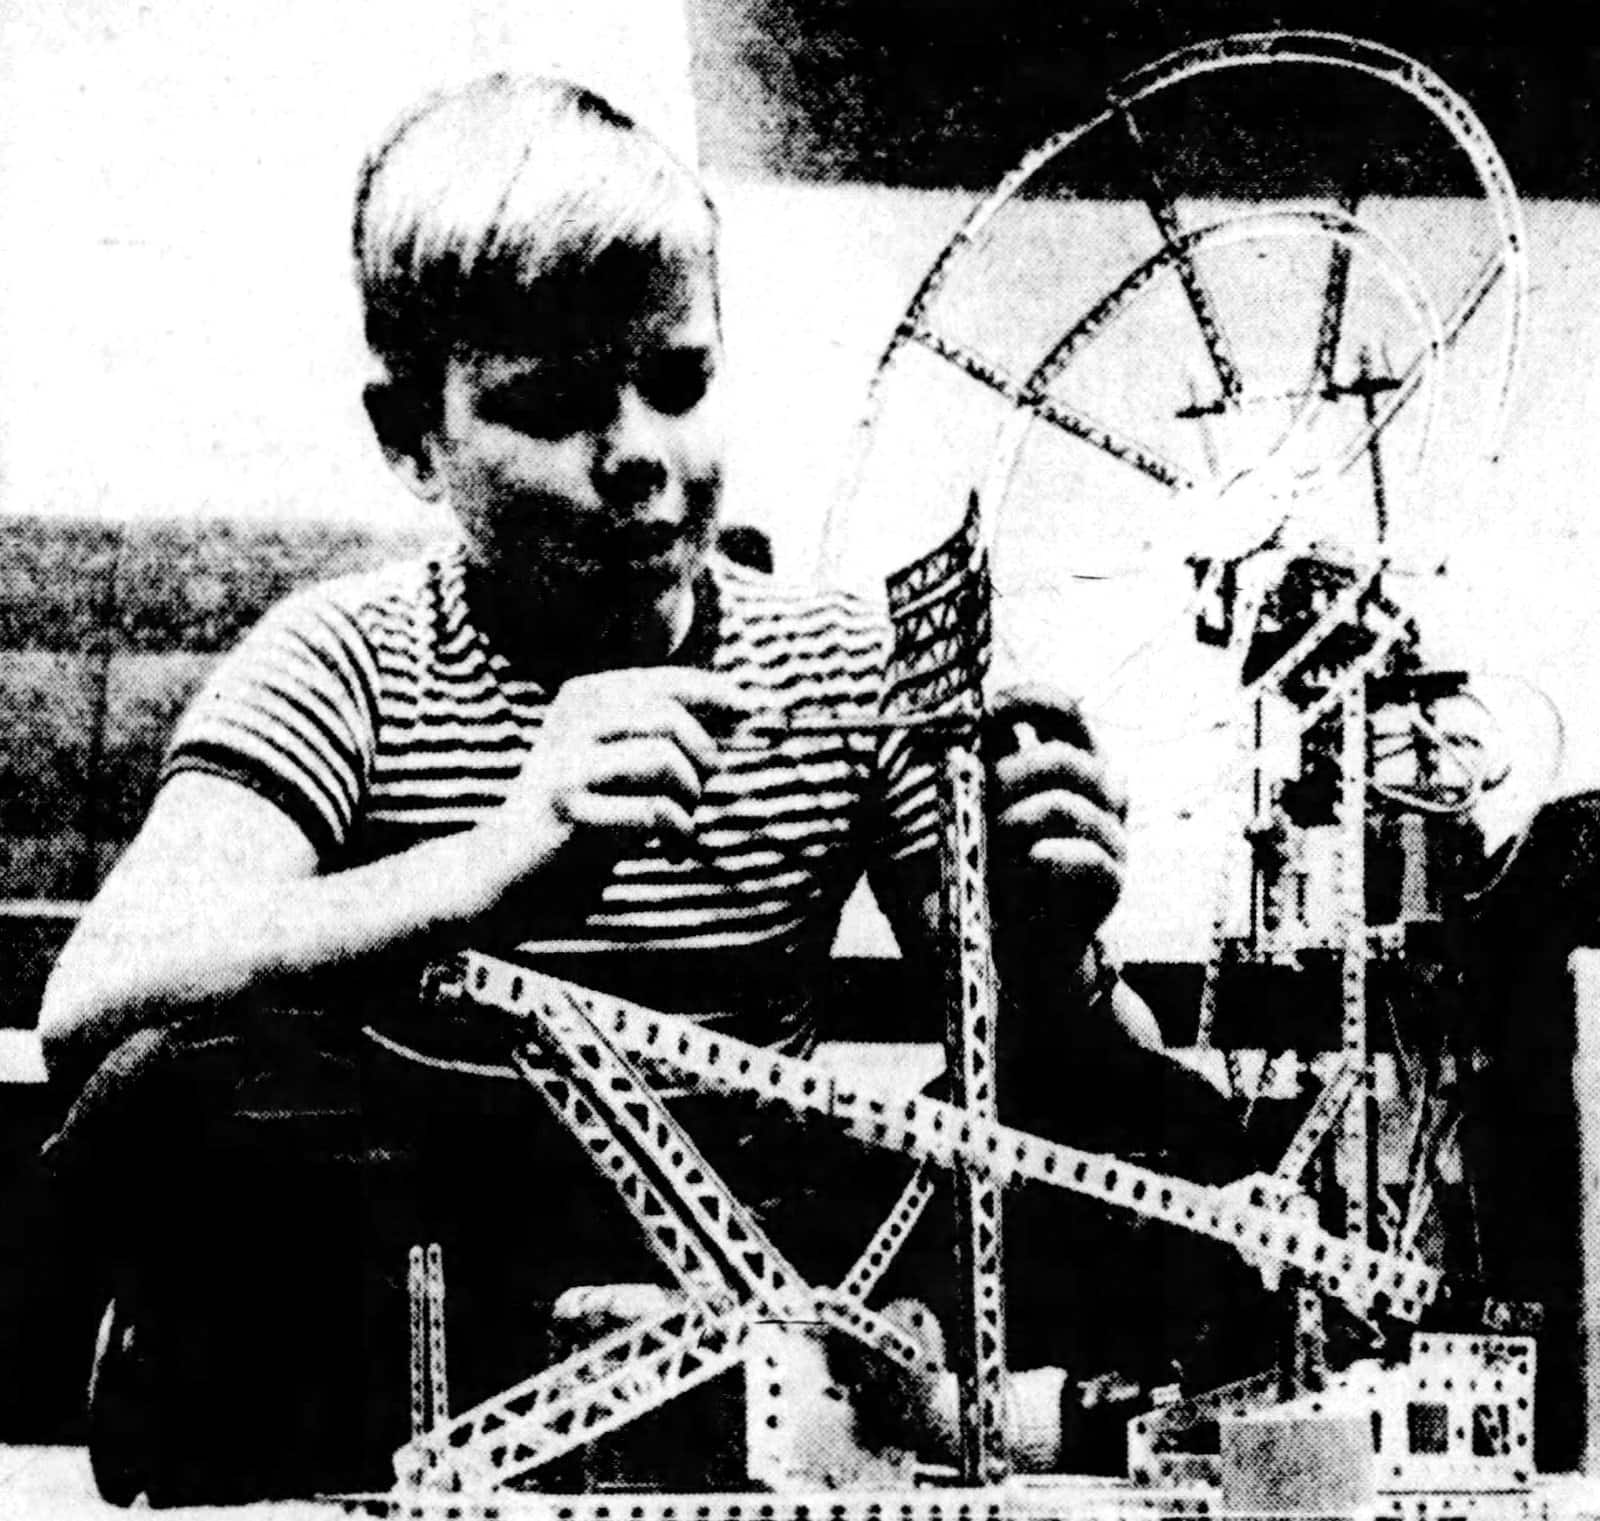 Boy playing with an erector set in 1961